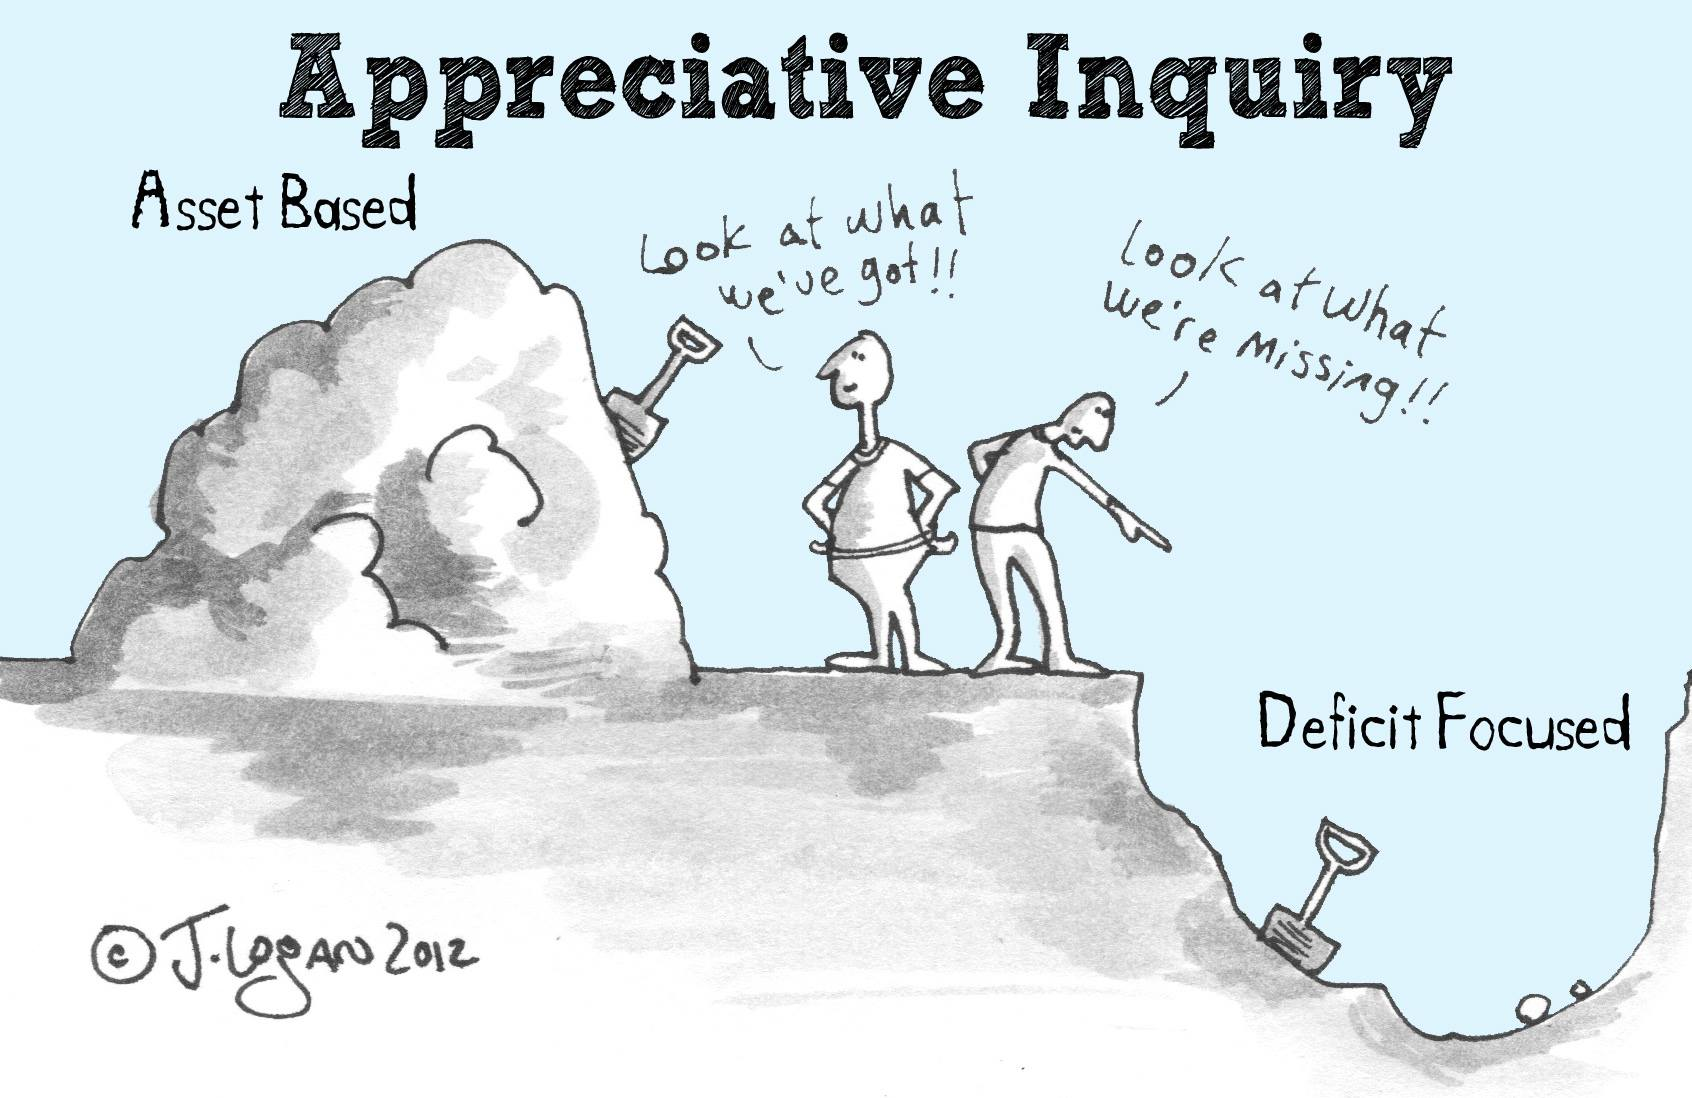 Appreciative Inquiry: Asset & Deficit